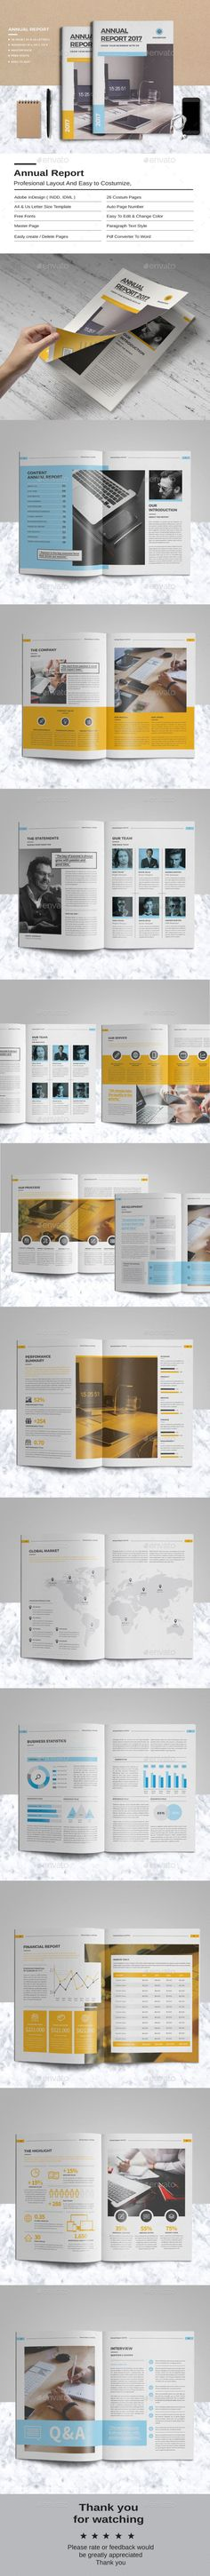 Annual Report Professional The annual report for creative businesses, created in Adobe InDesign it comes in two paper sizes including US Letter and International A4 .